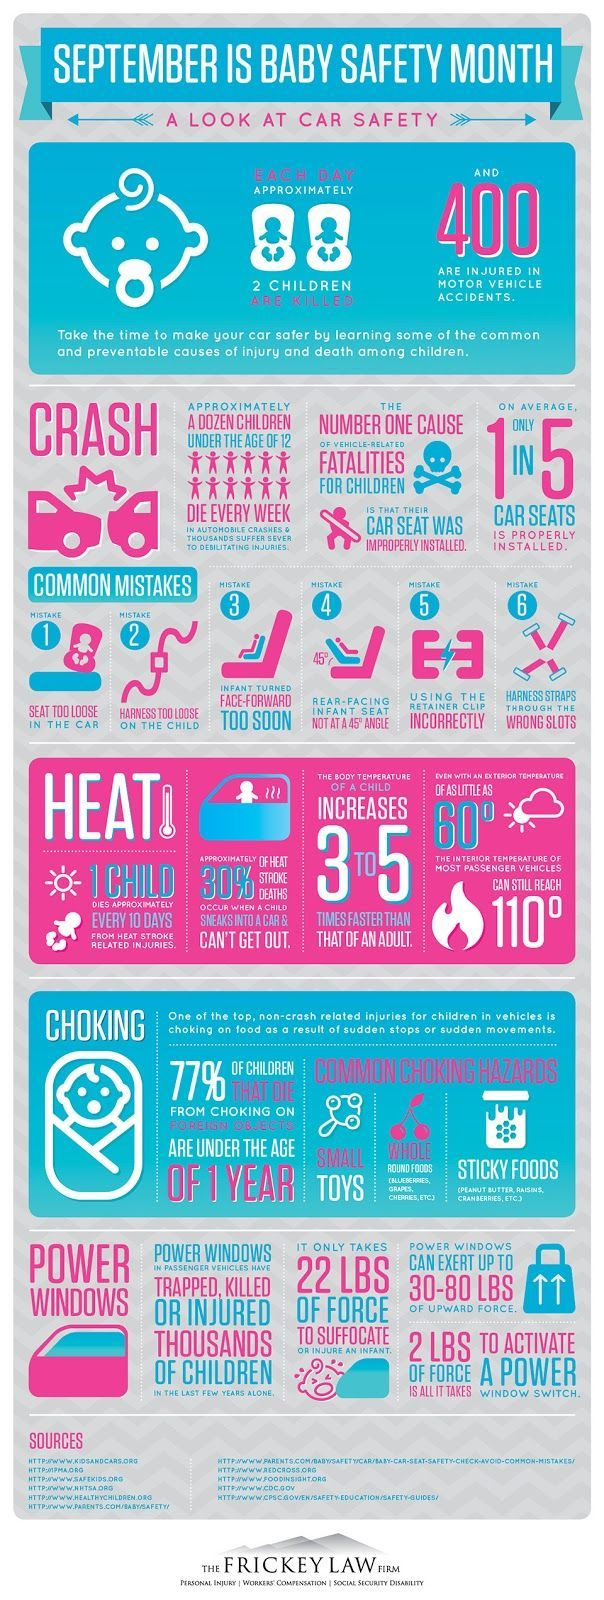 Baby Safety Month A Look At Car Seat Facts About Child In Cars Ad